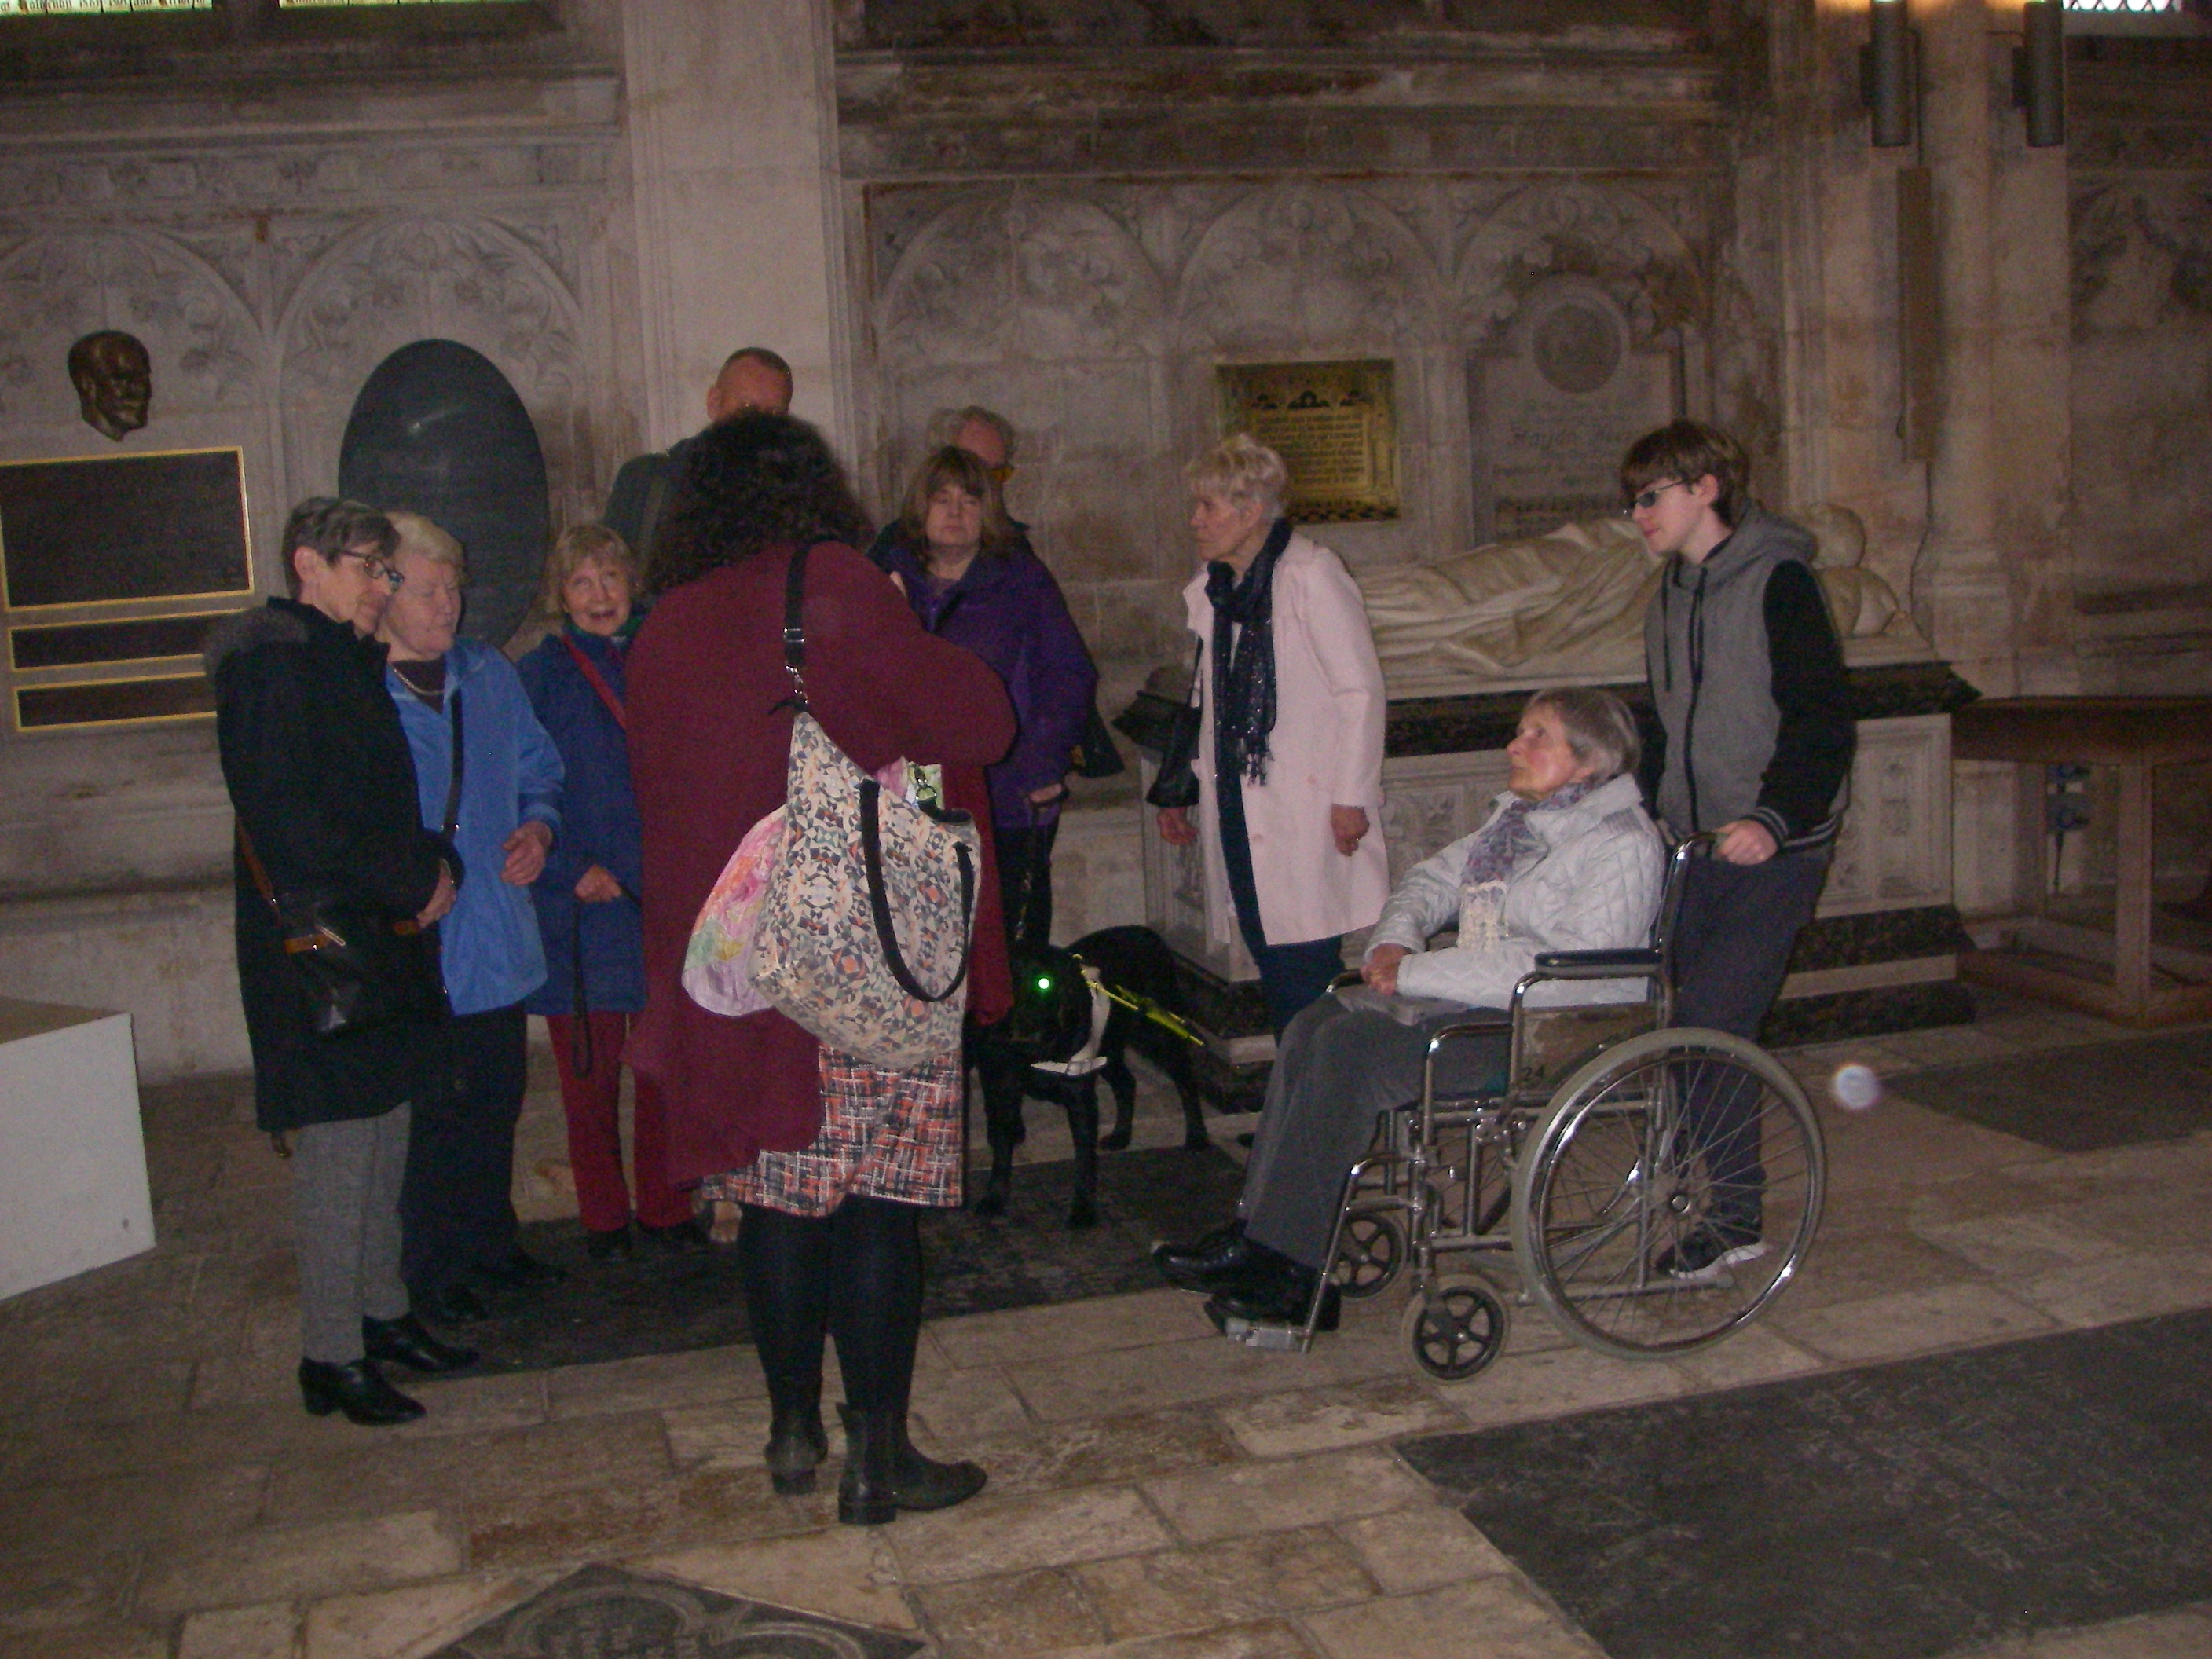 PAB Members and guides talking in the Cathedral